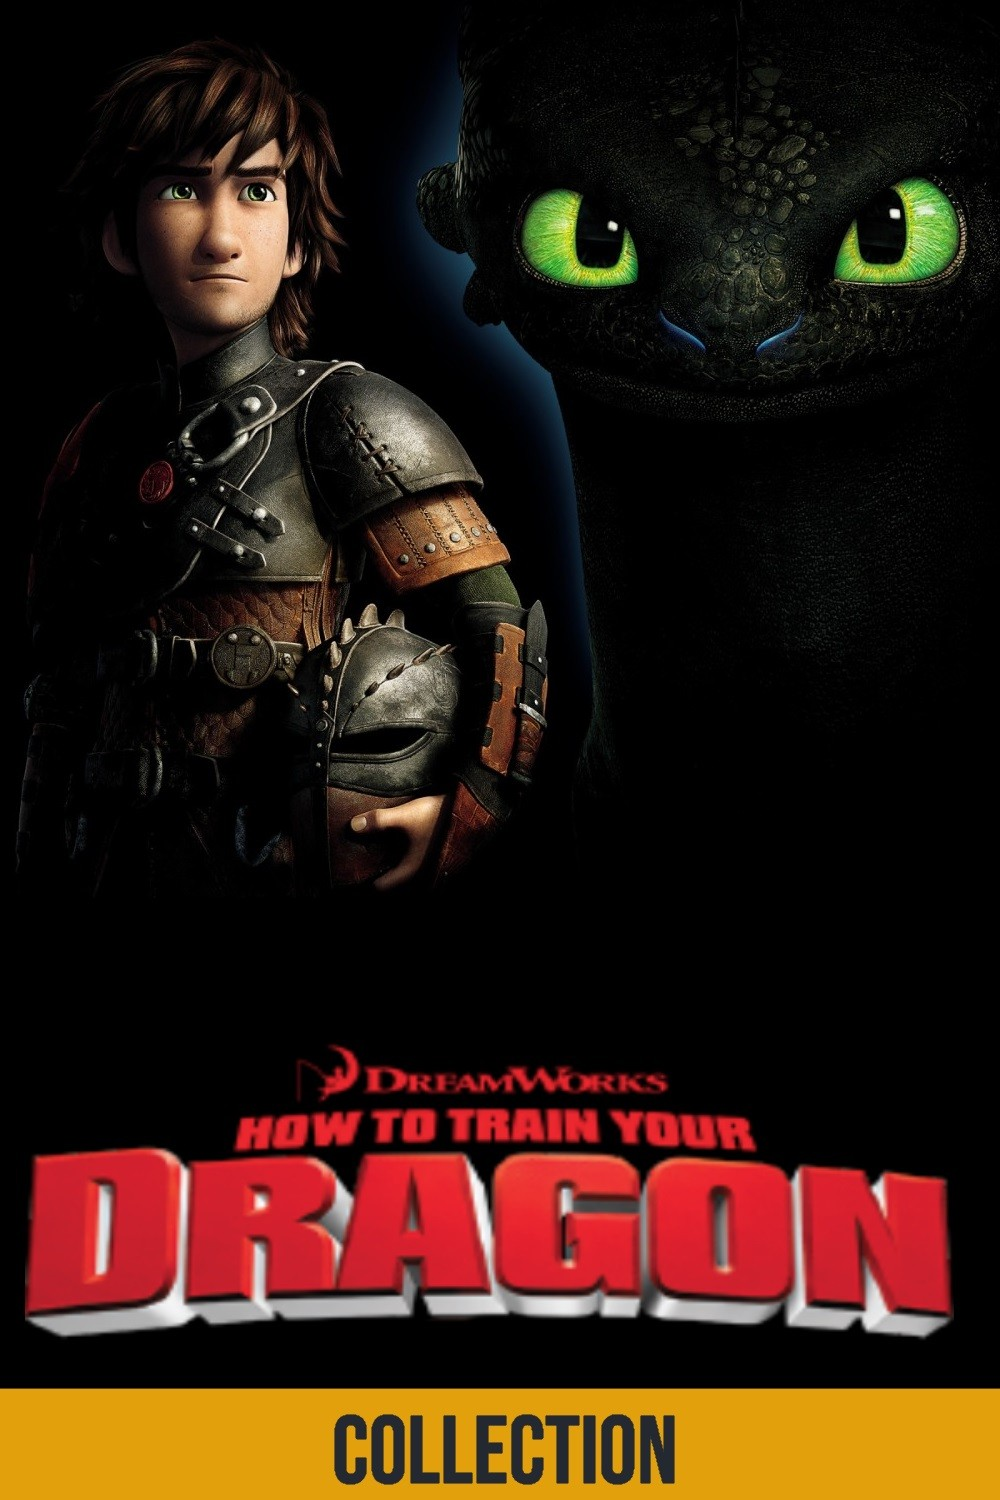 How To Train Your Dragon Plex Collection Posters